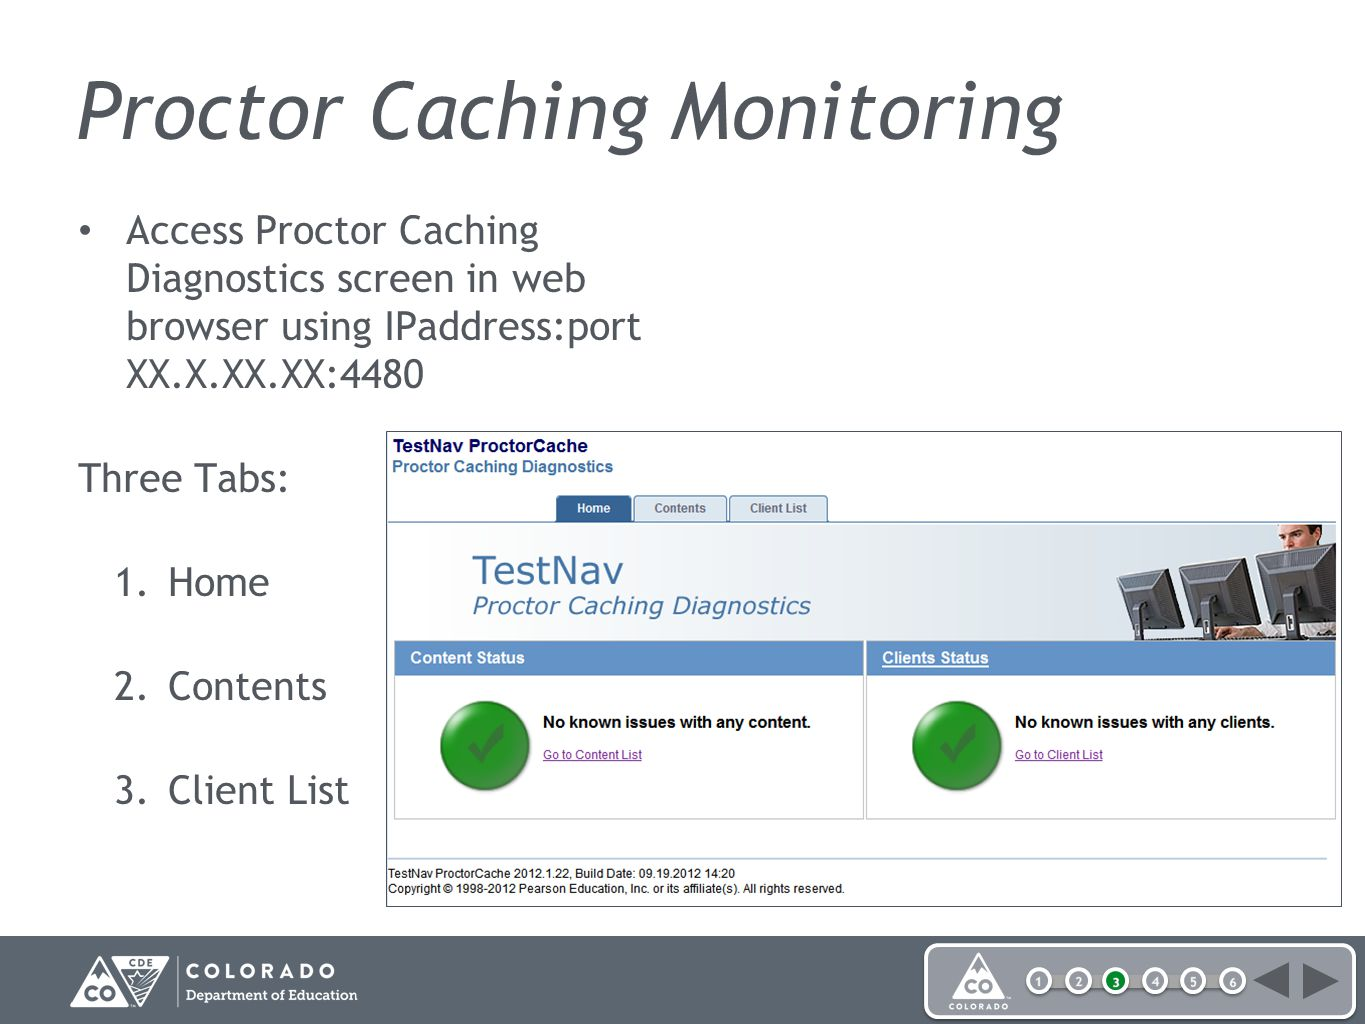 Proctor Caching Monitoring Access Proctor Caching Diagnostics screen in web browser using IPaddress:port XX.X.XX.XX:4480 Three Tabs: 1.Home 2.Contents 3.Client List